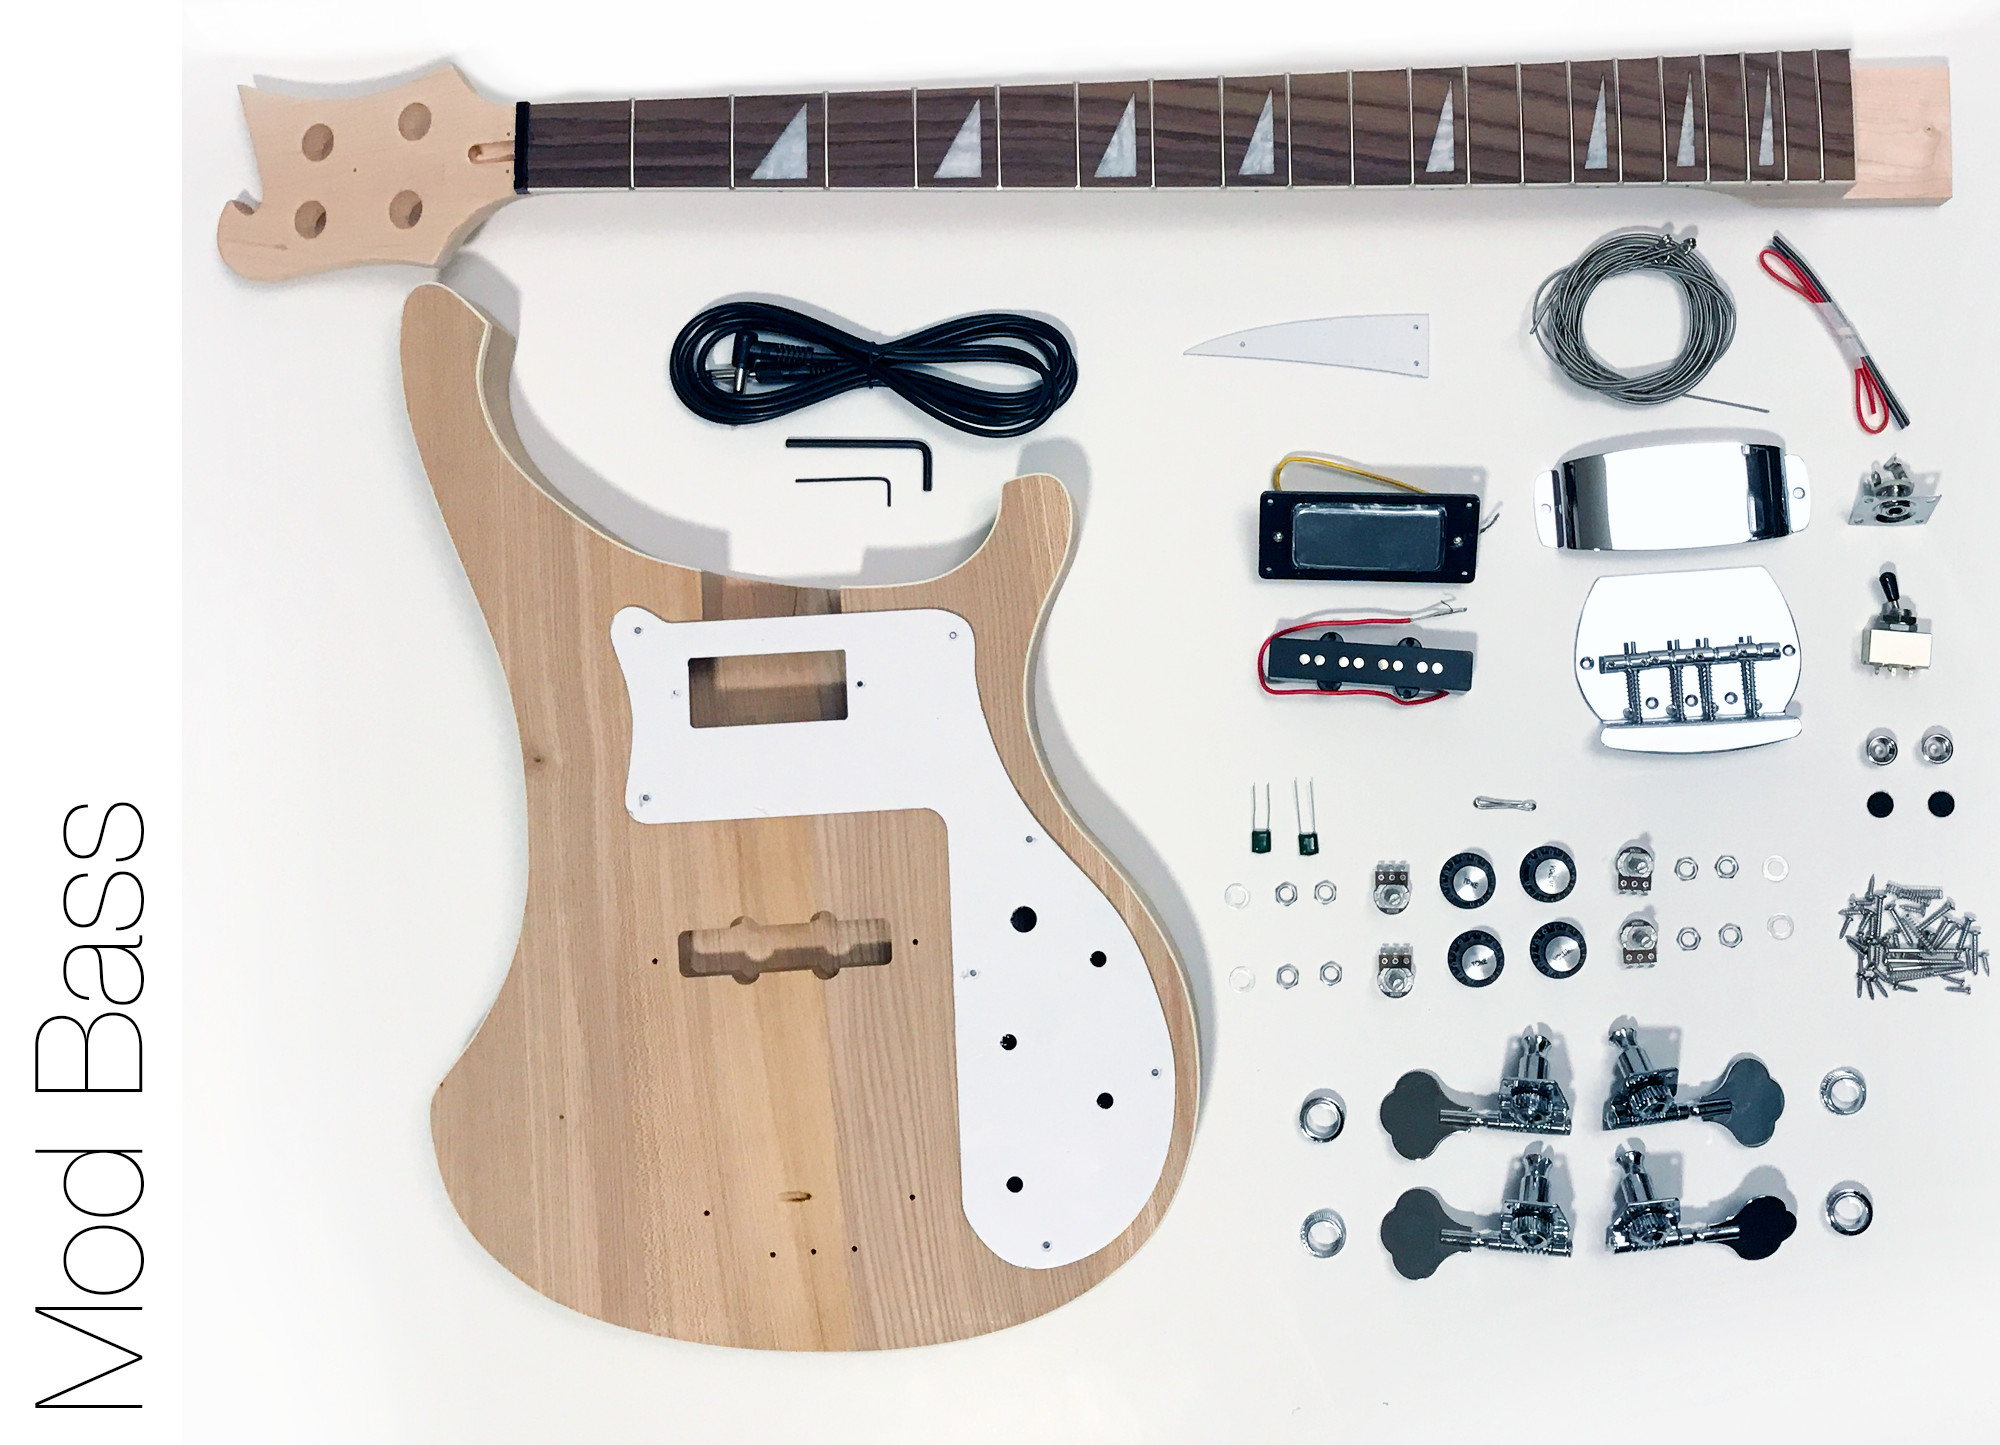 Best ideas about DIY Bass Guitar Kits . Save or Pin DIY bass kits with upgraded pickups Now.